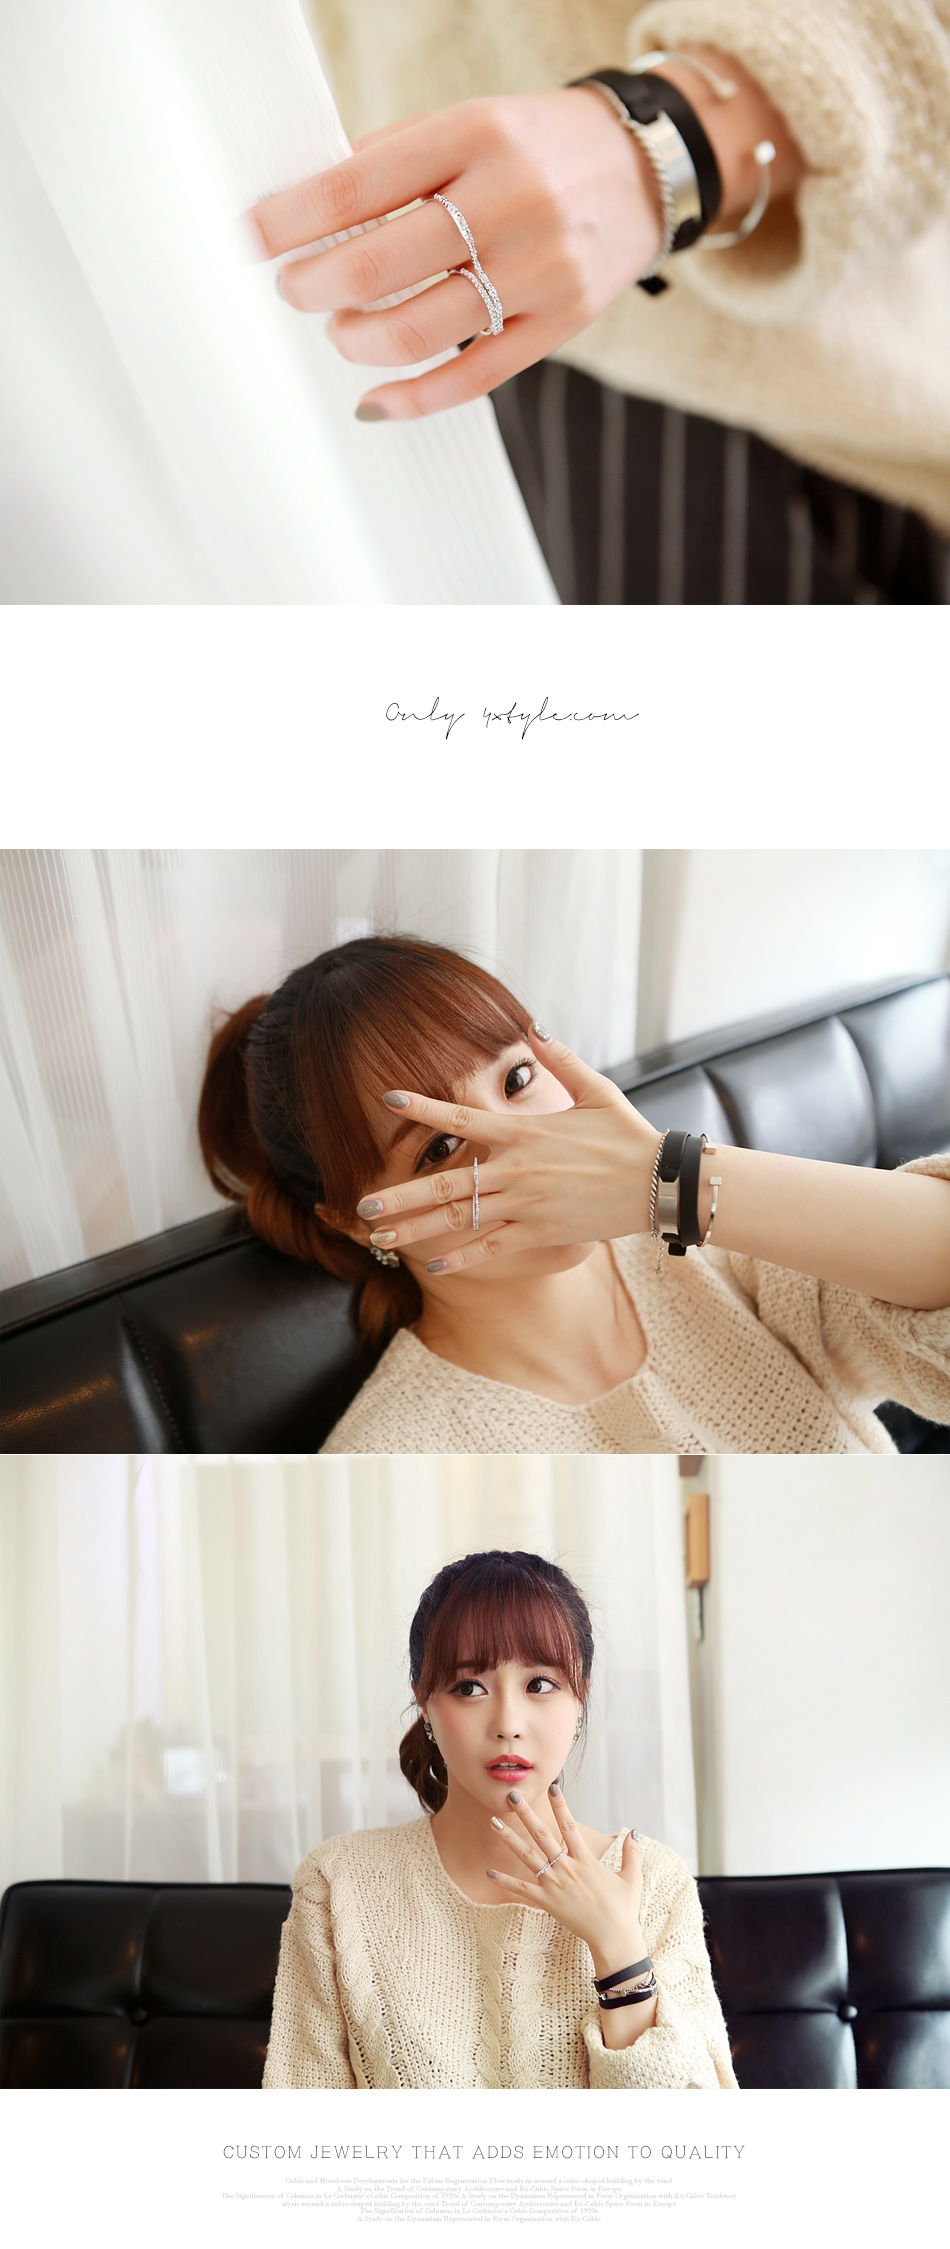 [ 4xtyle ] Women Tasty Double Ring, 2 colors